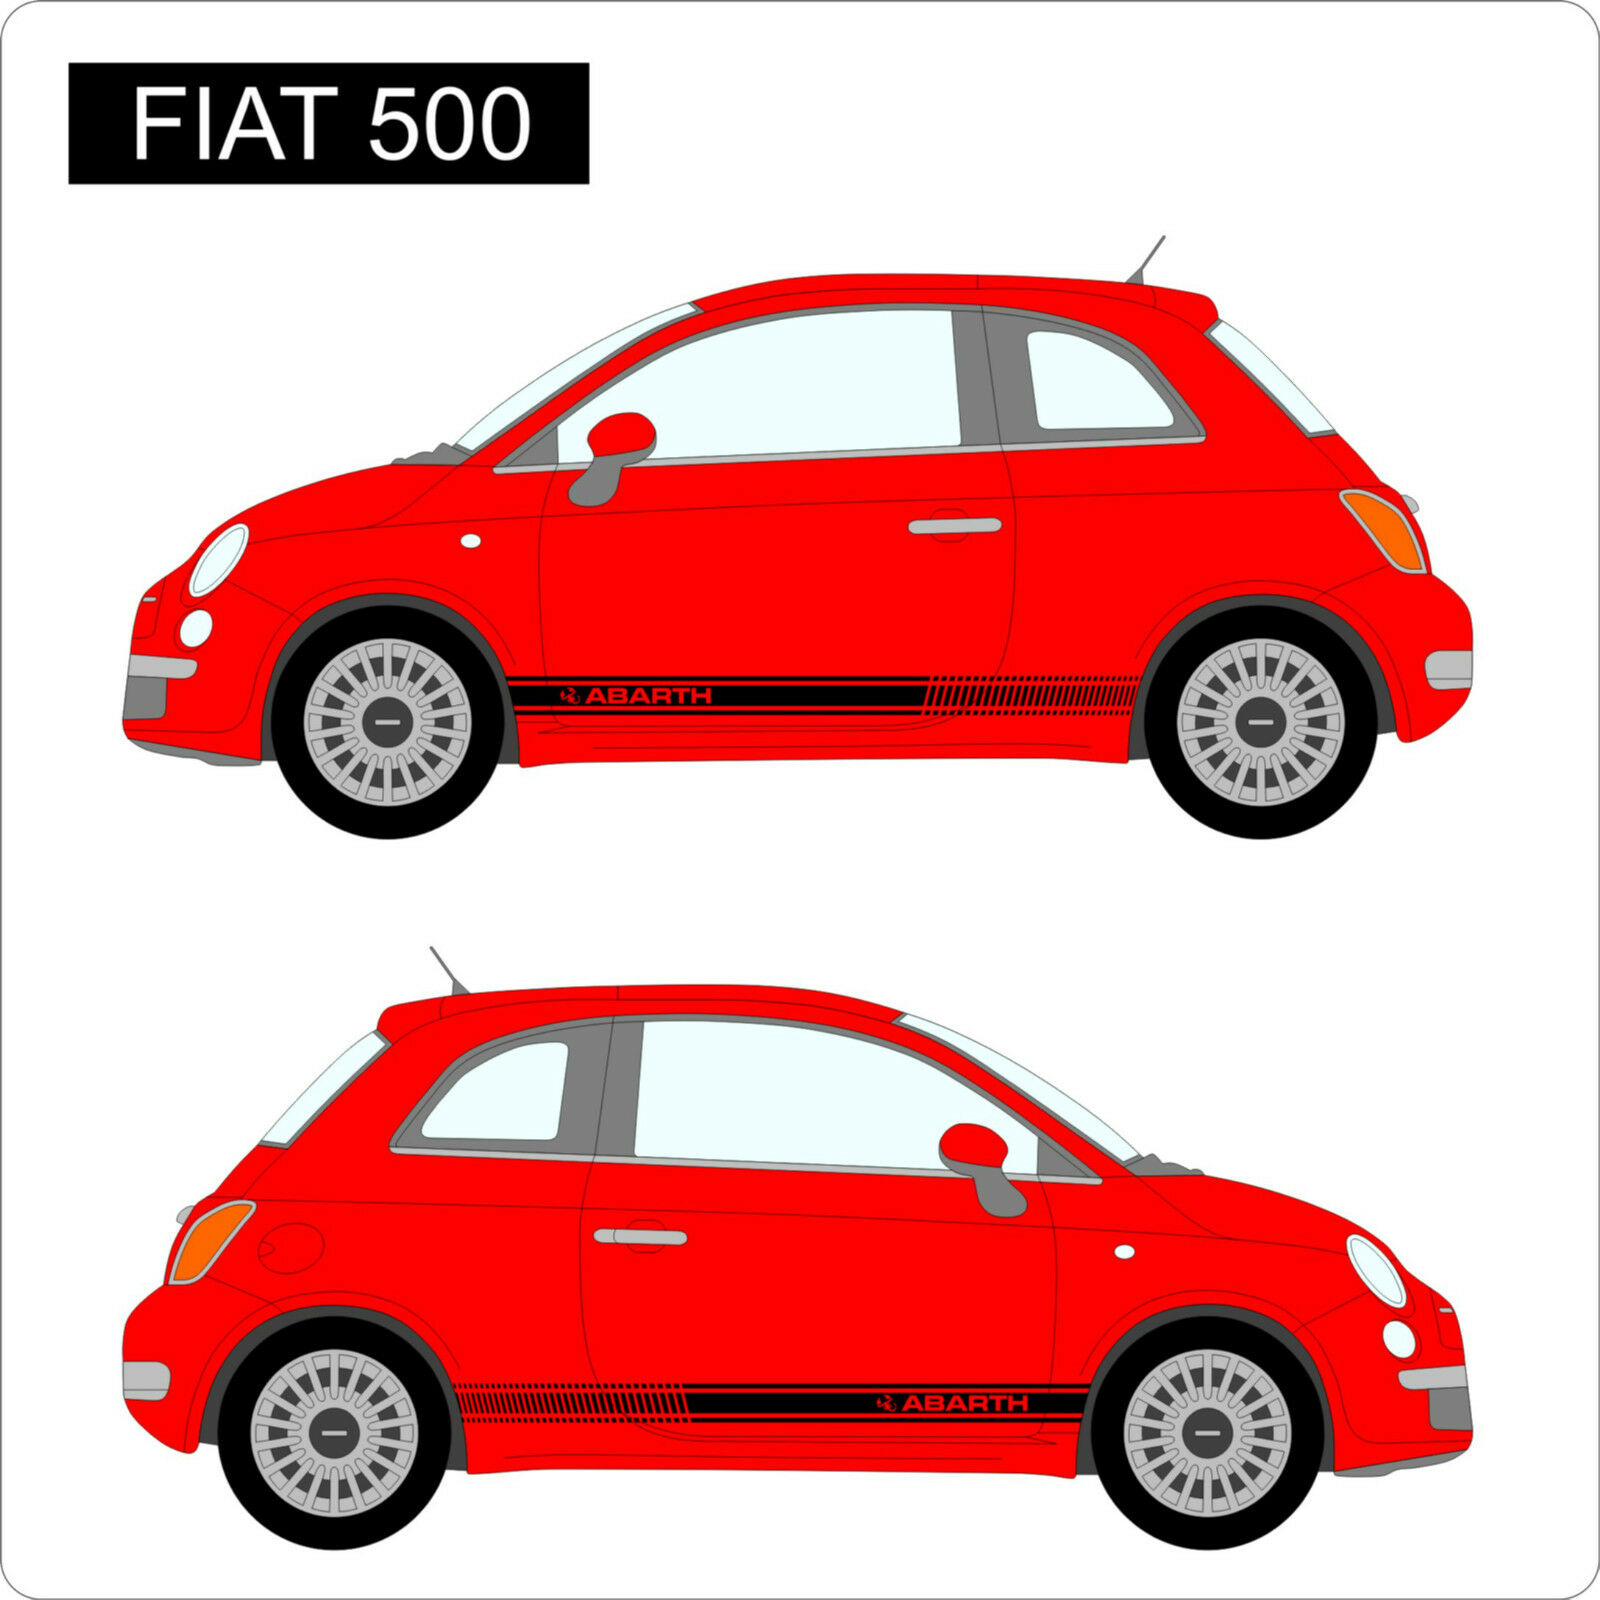 Fiat 500 abarth side stripes custom car stickers decal vinyl graphics